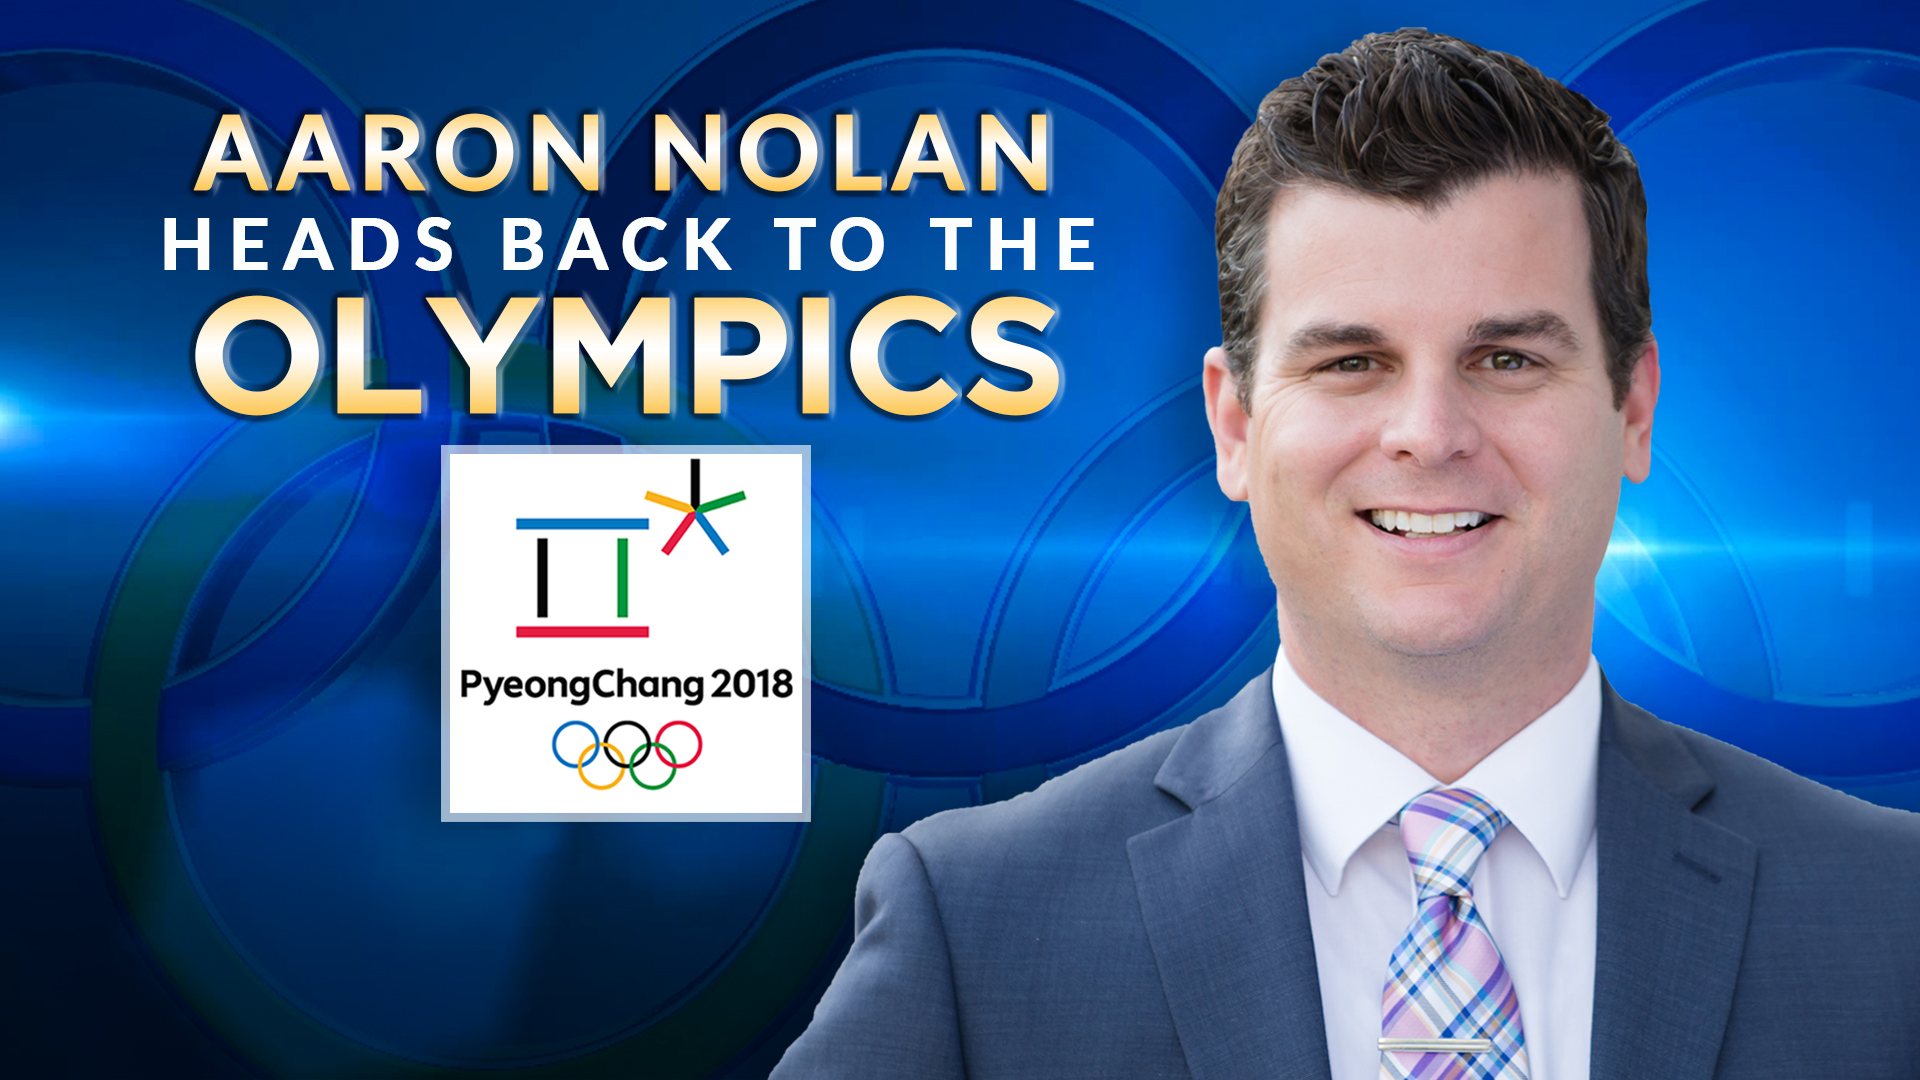 Aaron Nolan Heads Back to the Olympics in 2018_1502373652869.JPG